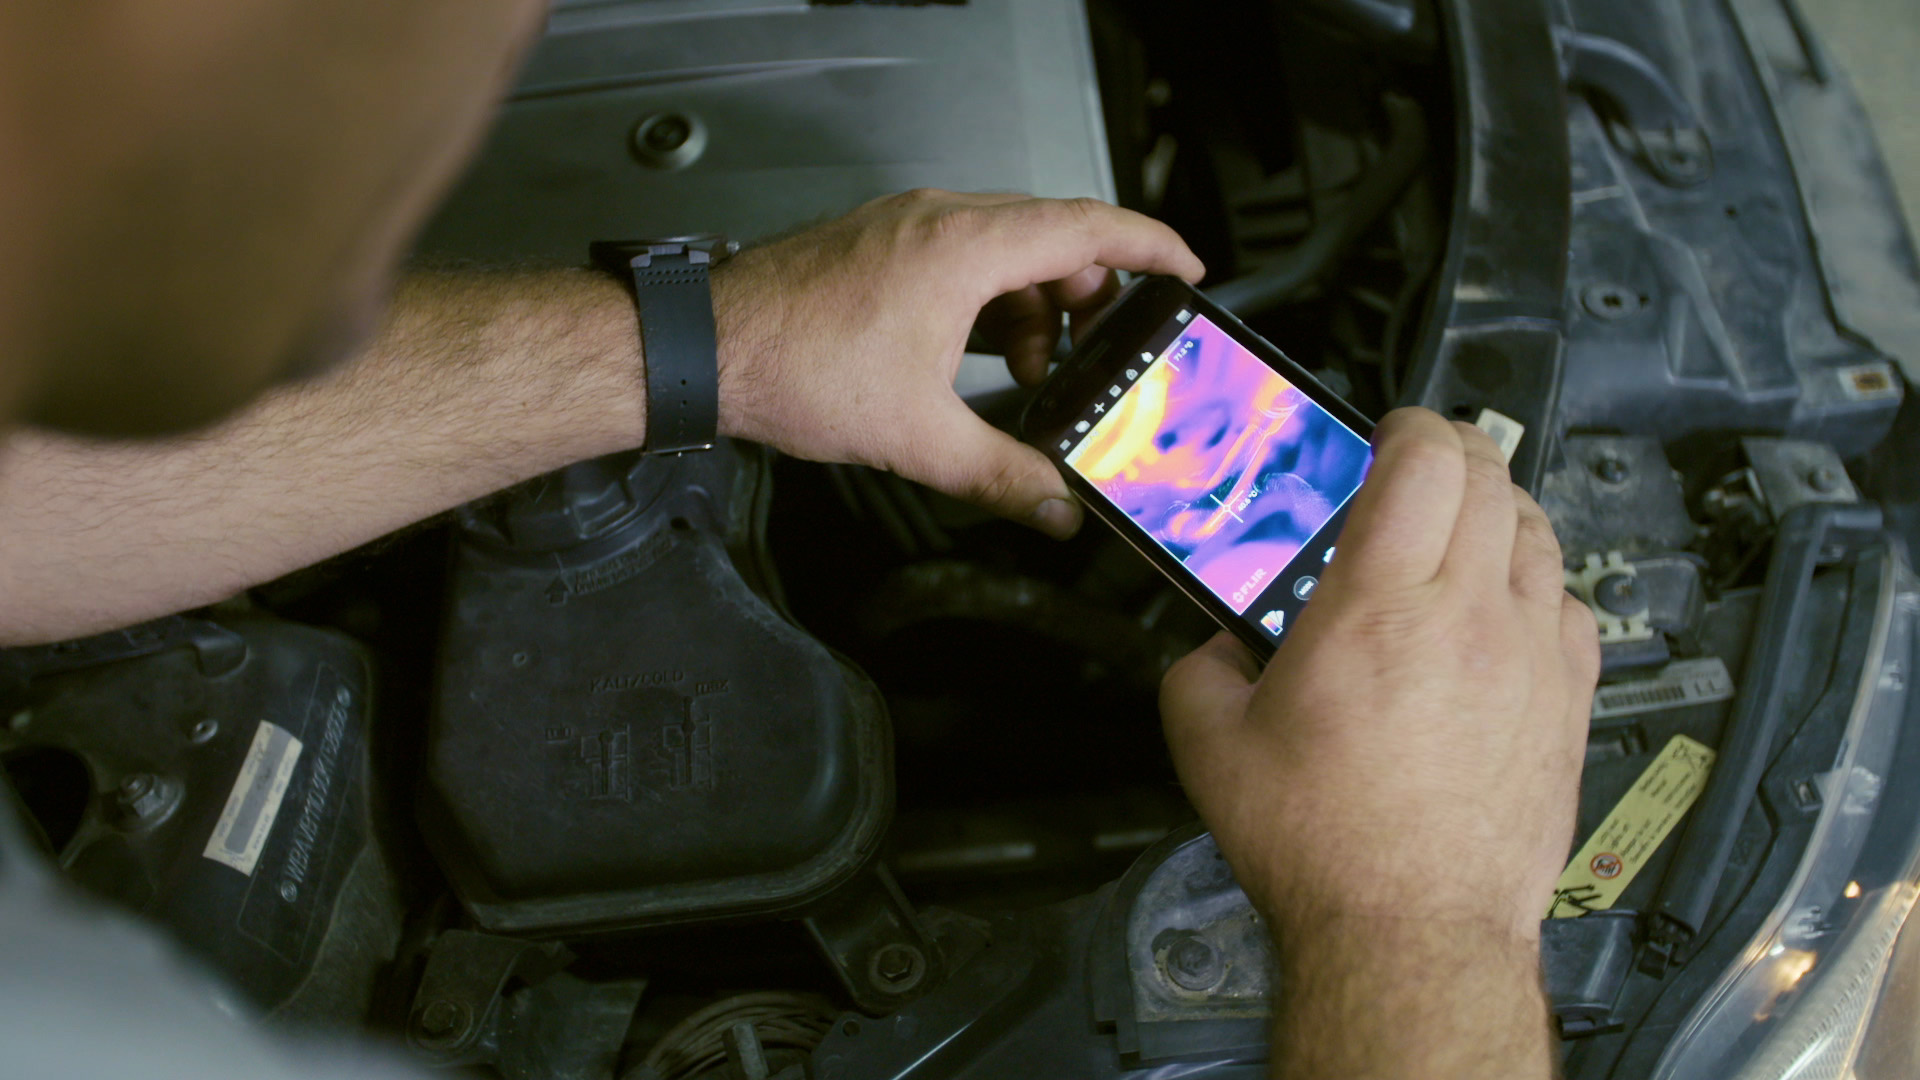 Using the thermal camera of the Cat S61 to see into car engine | Cat phones